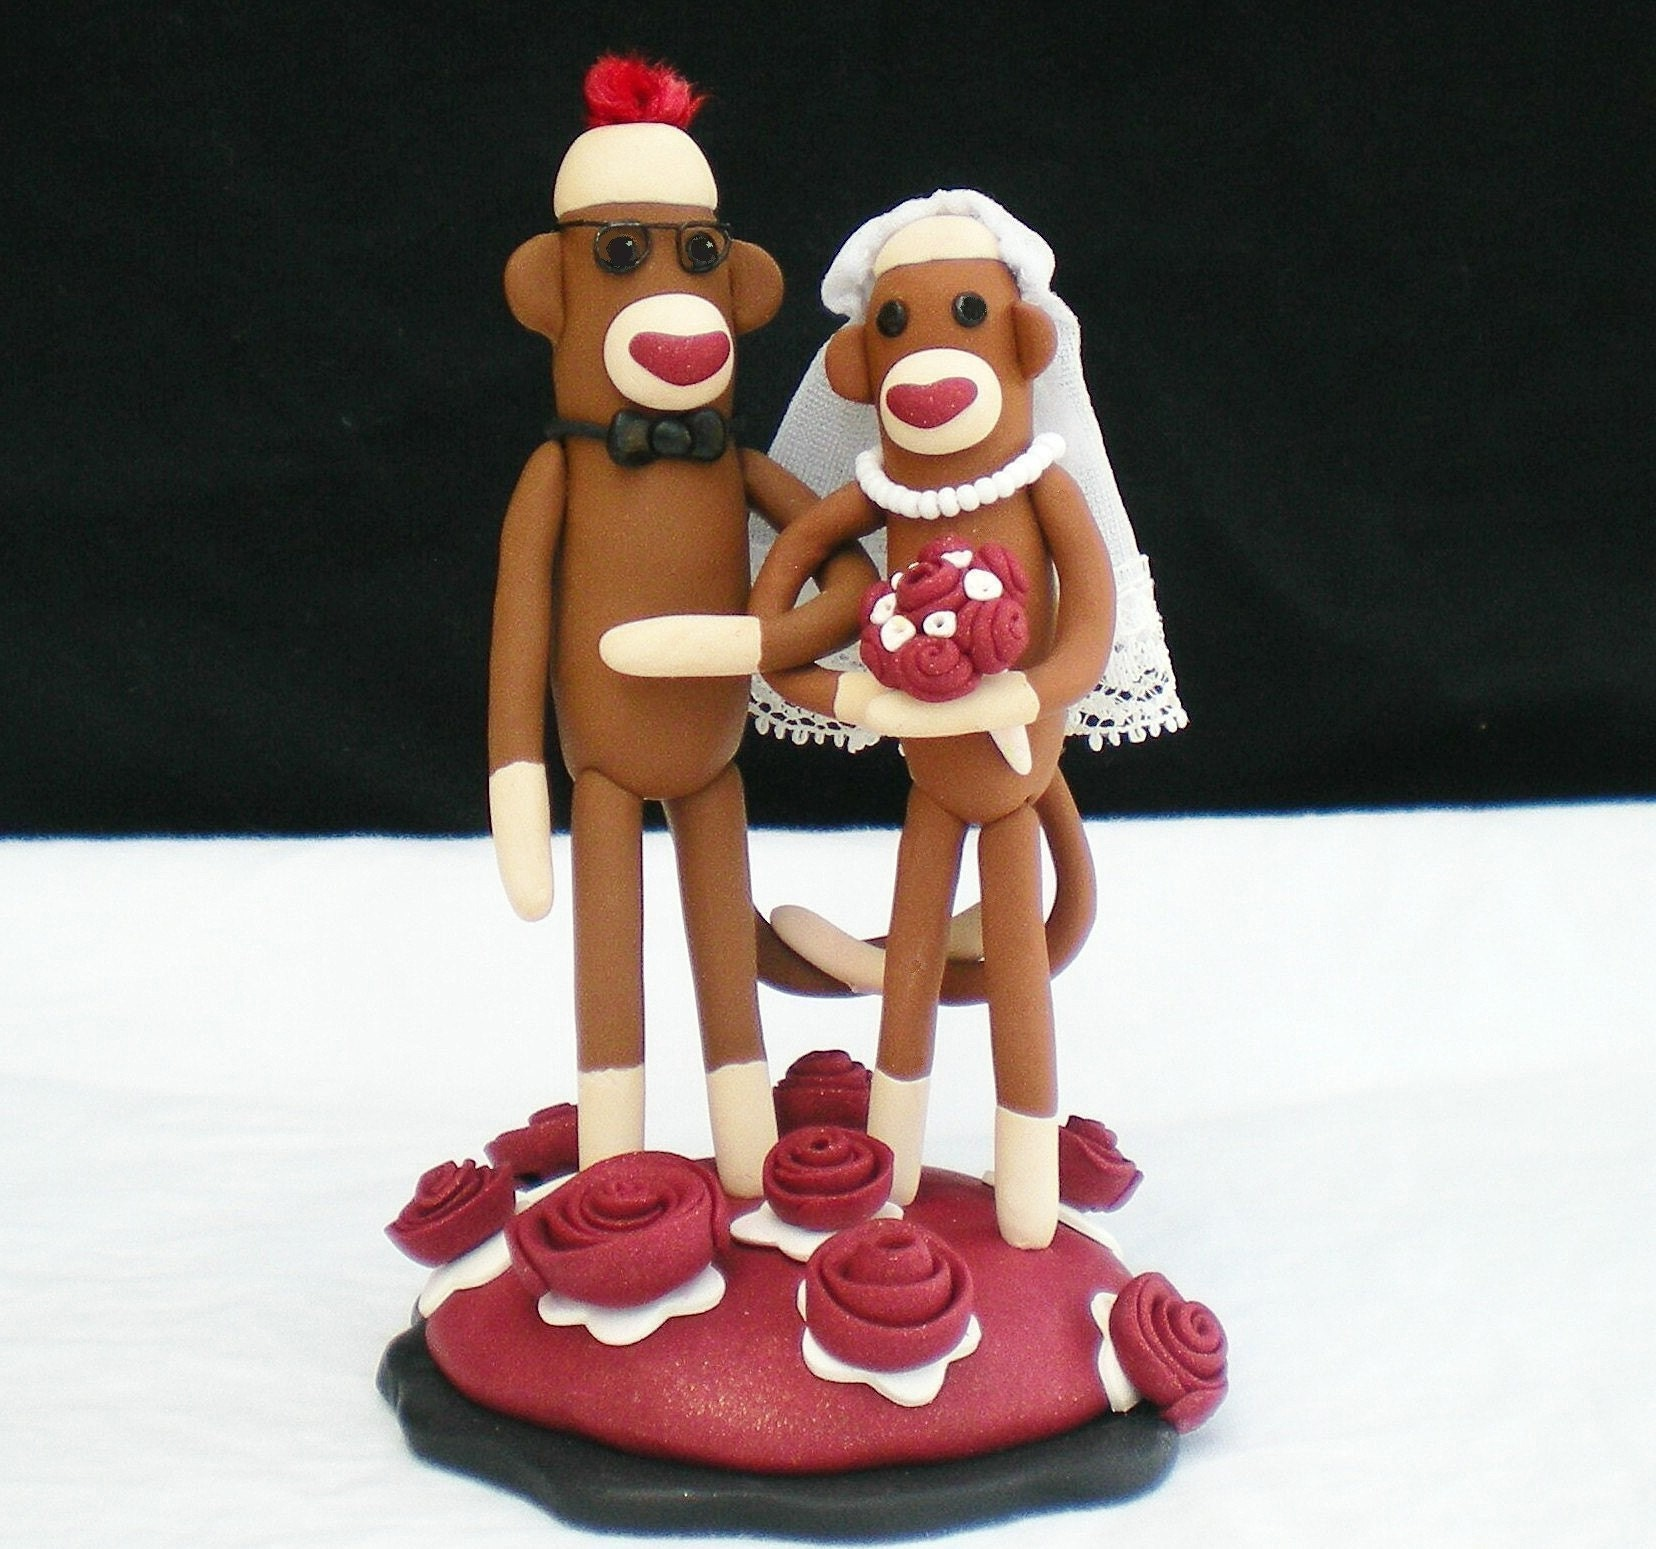 Custom 4 inch Sock Monkey Wedding Cake Topper in Your Colors